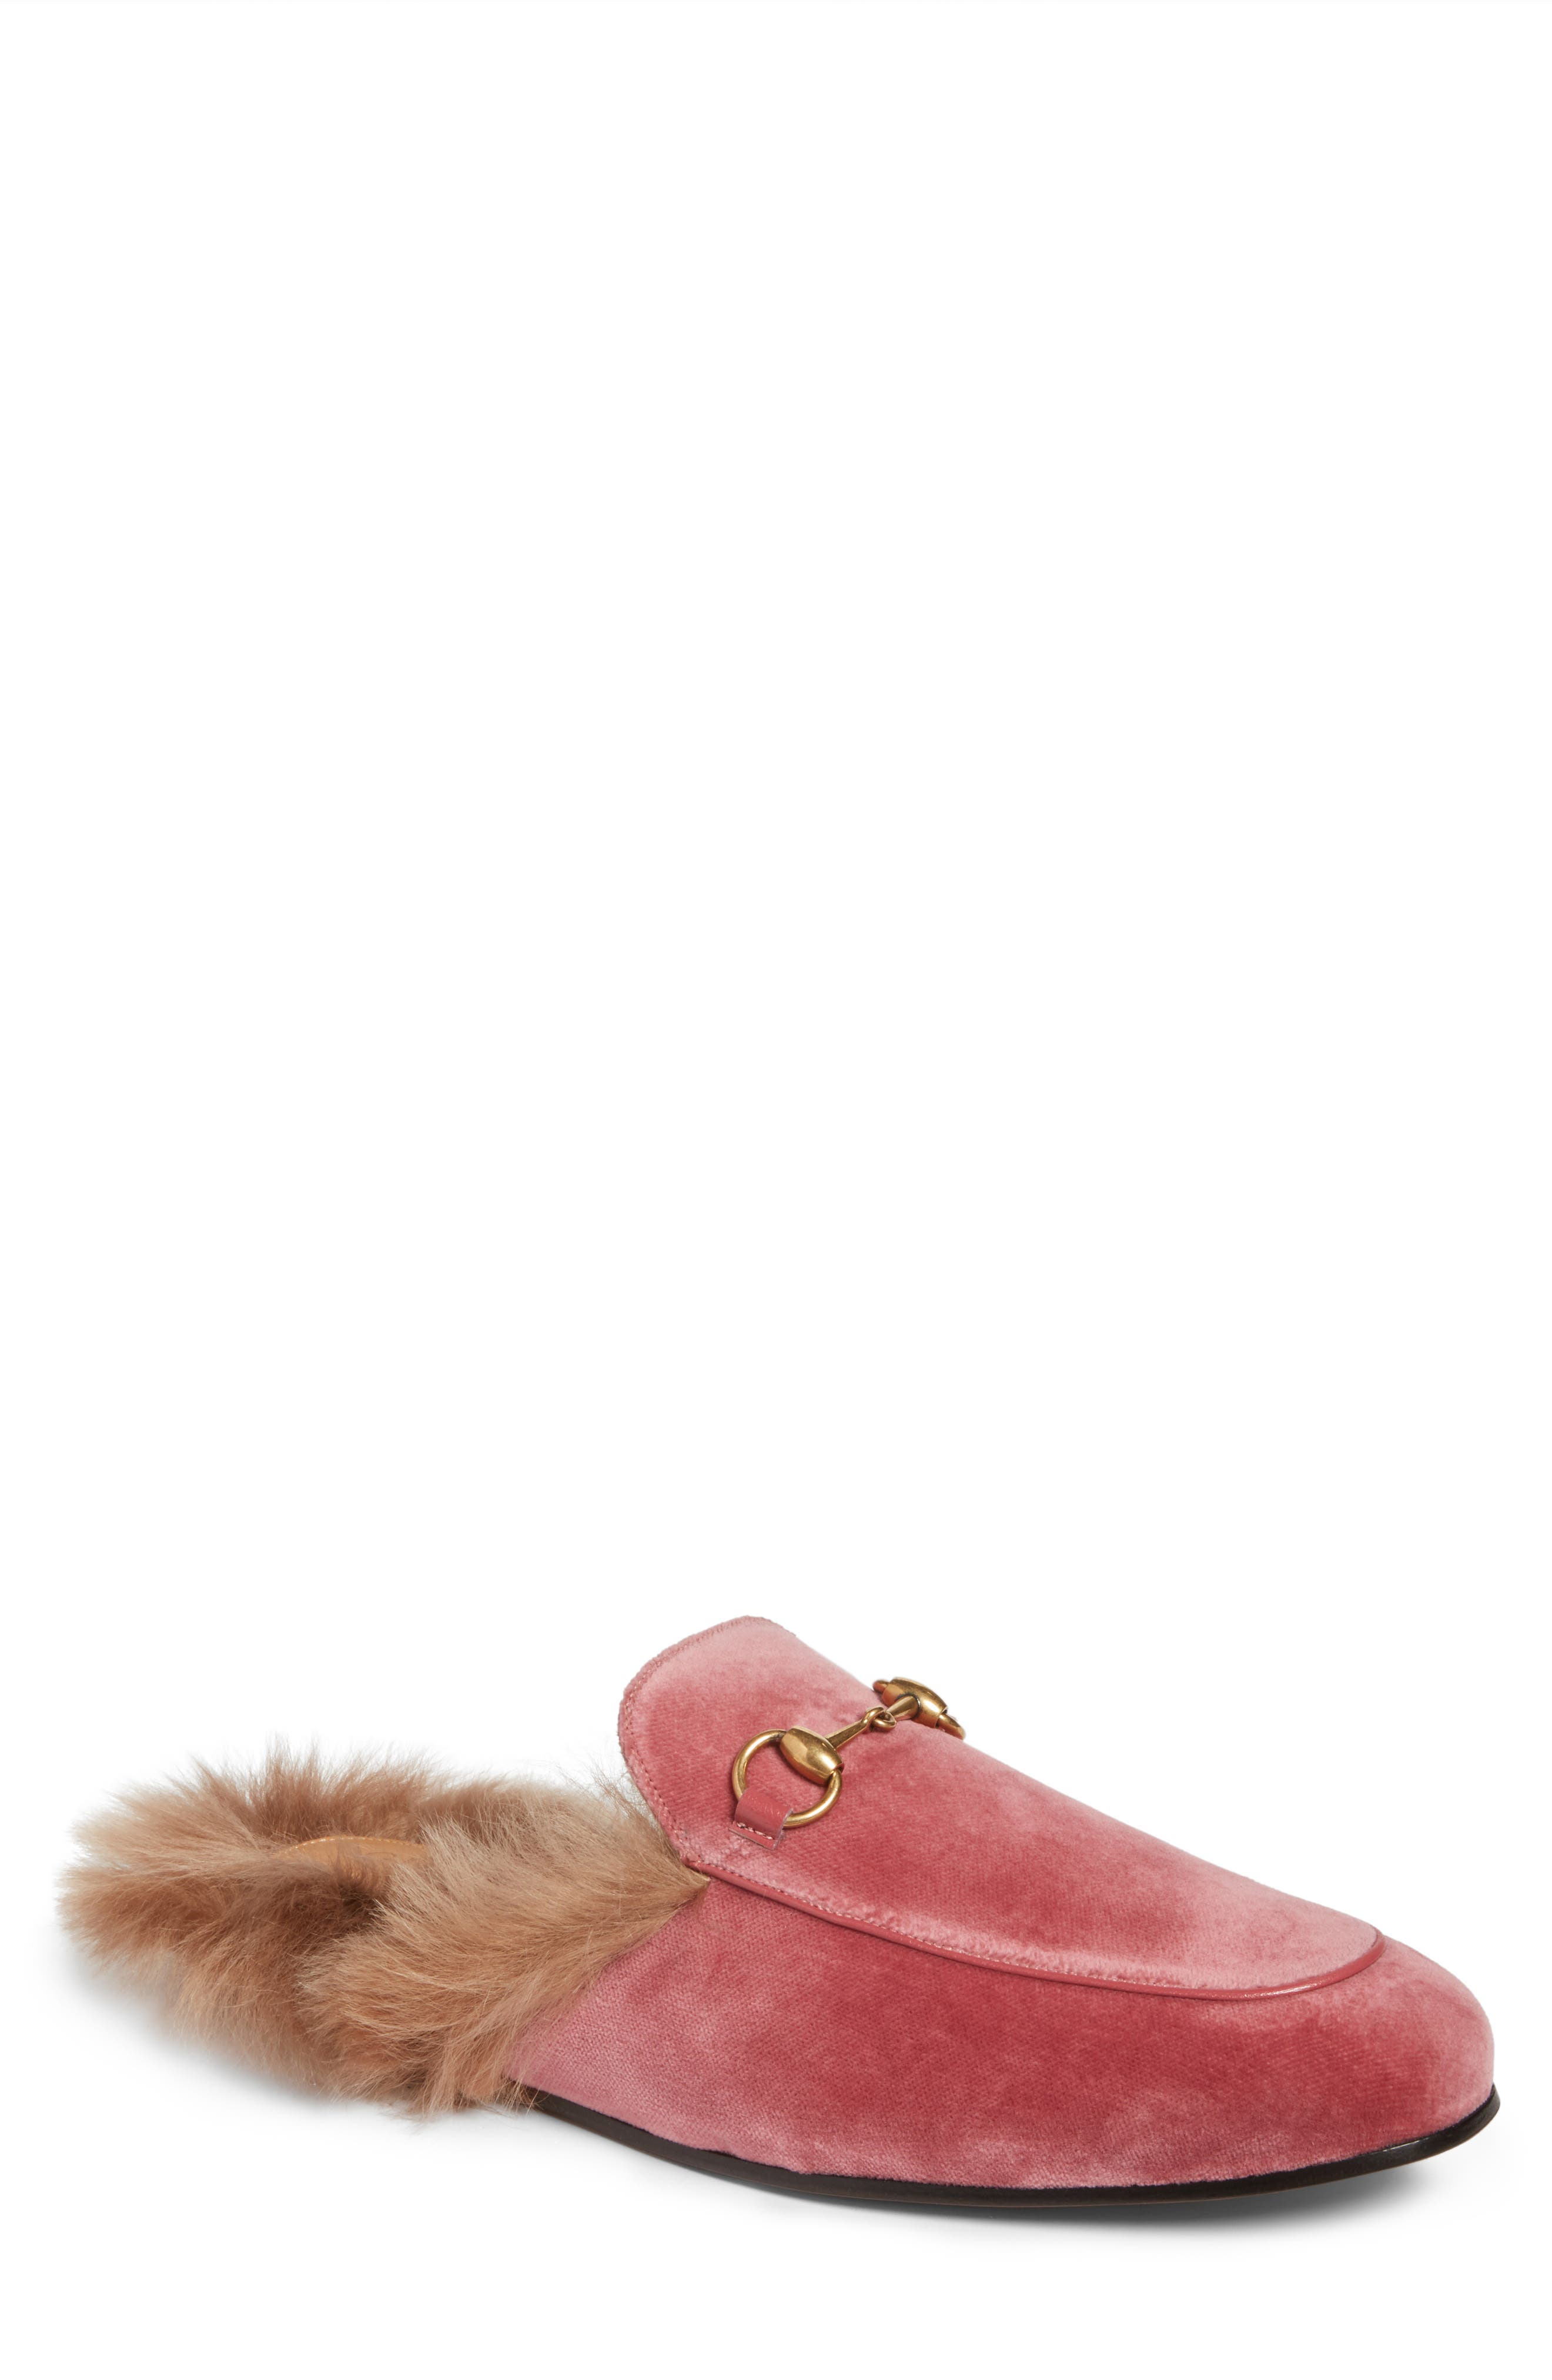 Alternate Image 1 Selected - Gucci Princetown Genuine Shearling Lined Mule Loafer (Men)